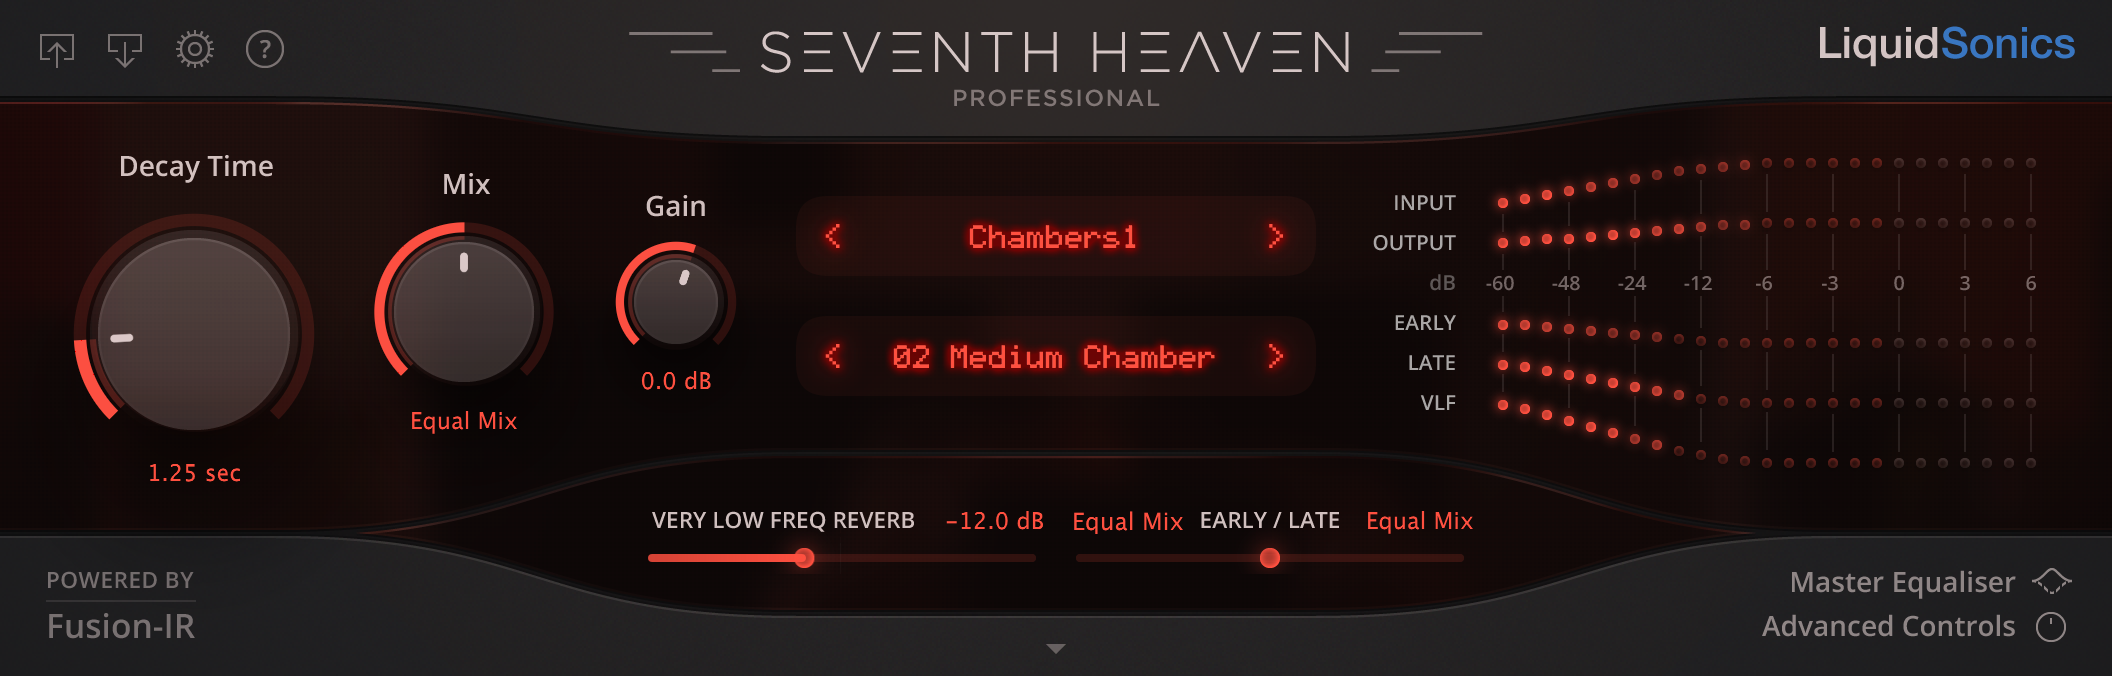 seventh_heaven_professional_01.png